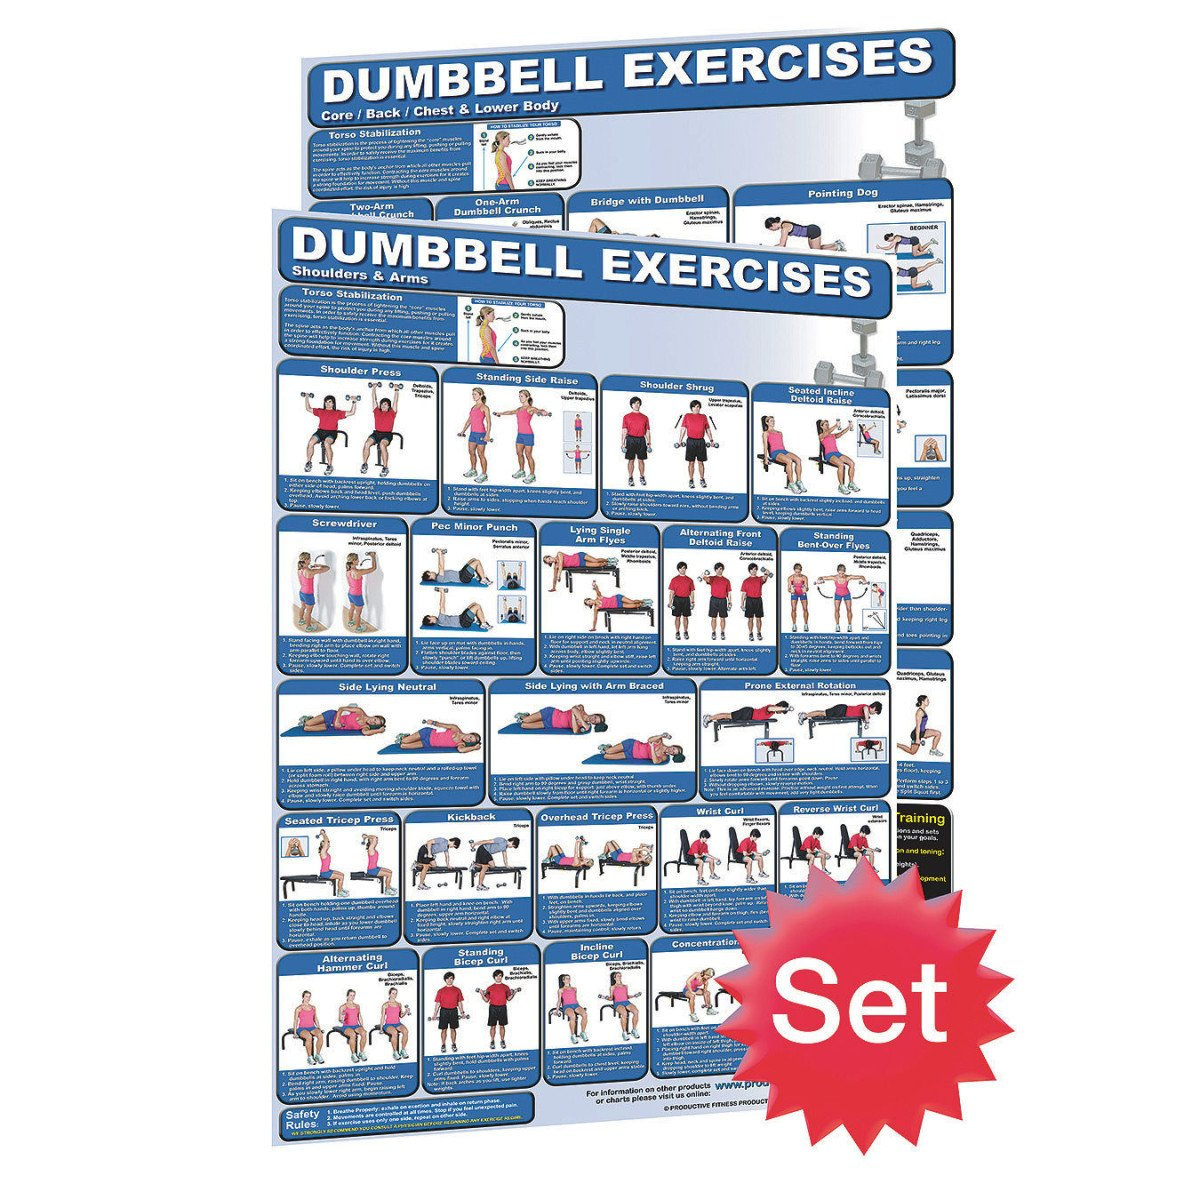 Laminated dumbbell exercises training chart set 1 shoulders and laminated dumbbell exercises training chart set 1 shoulders and arms training poster 2 core legs chest and back training poster dumbbell fitness geenschuldenfo Choice Image